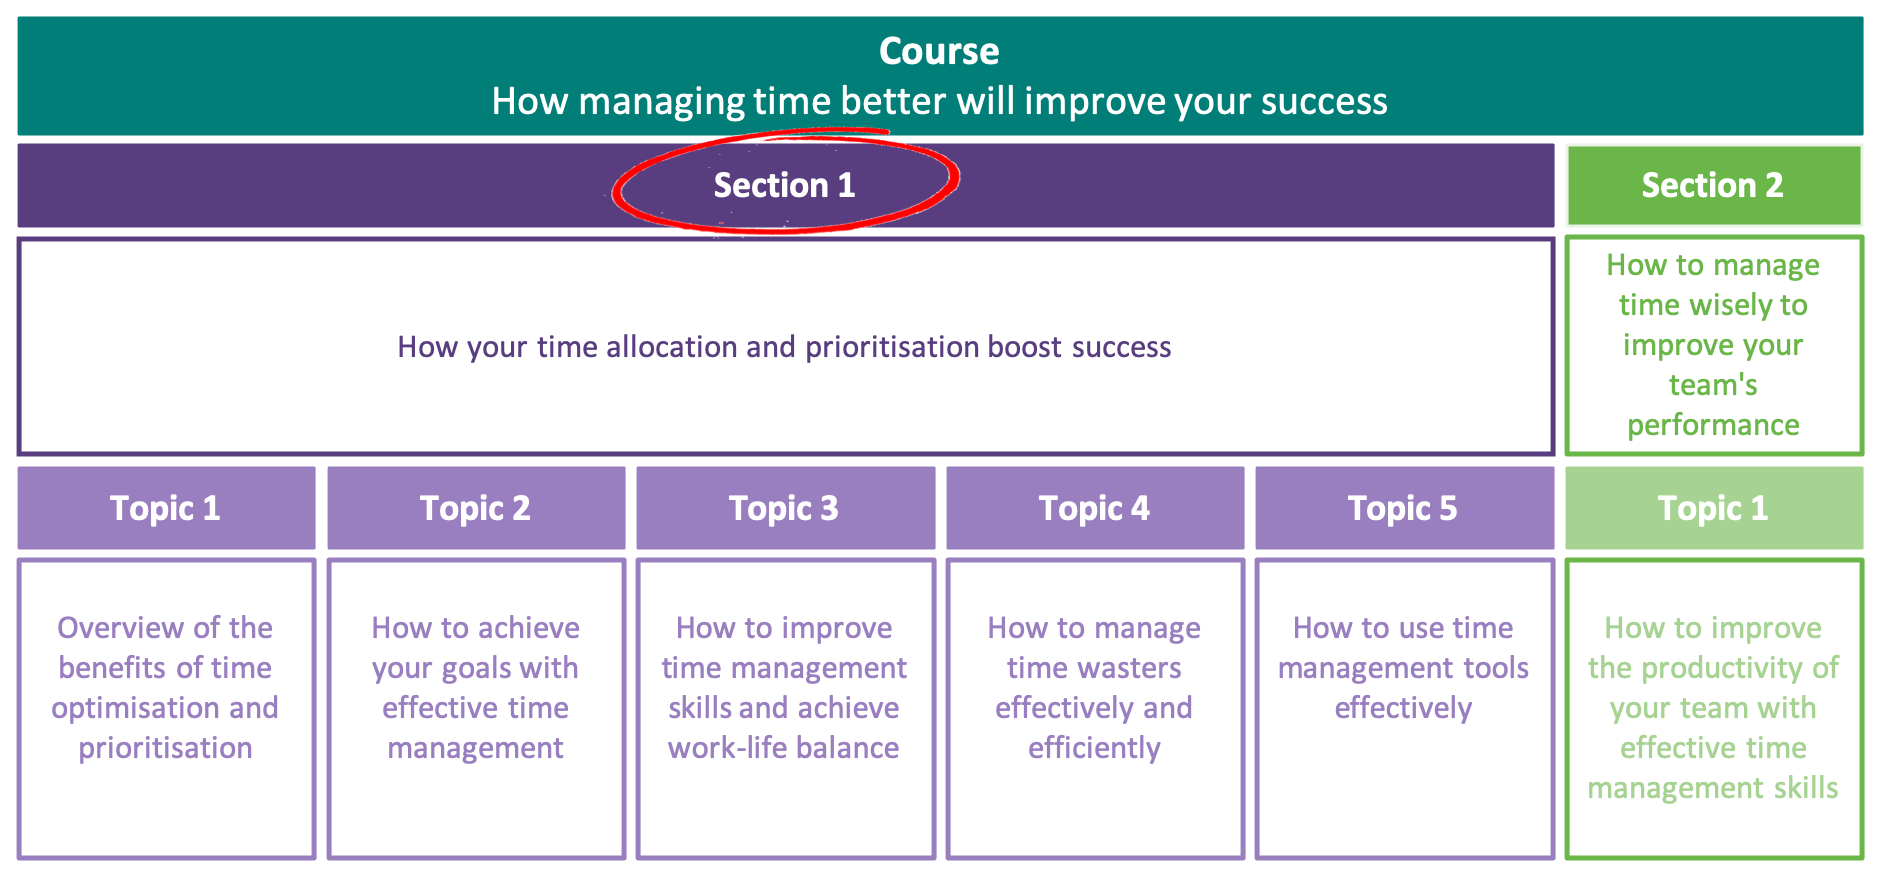 How your time allocation and prioritisation boost success